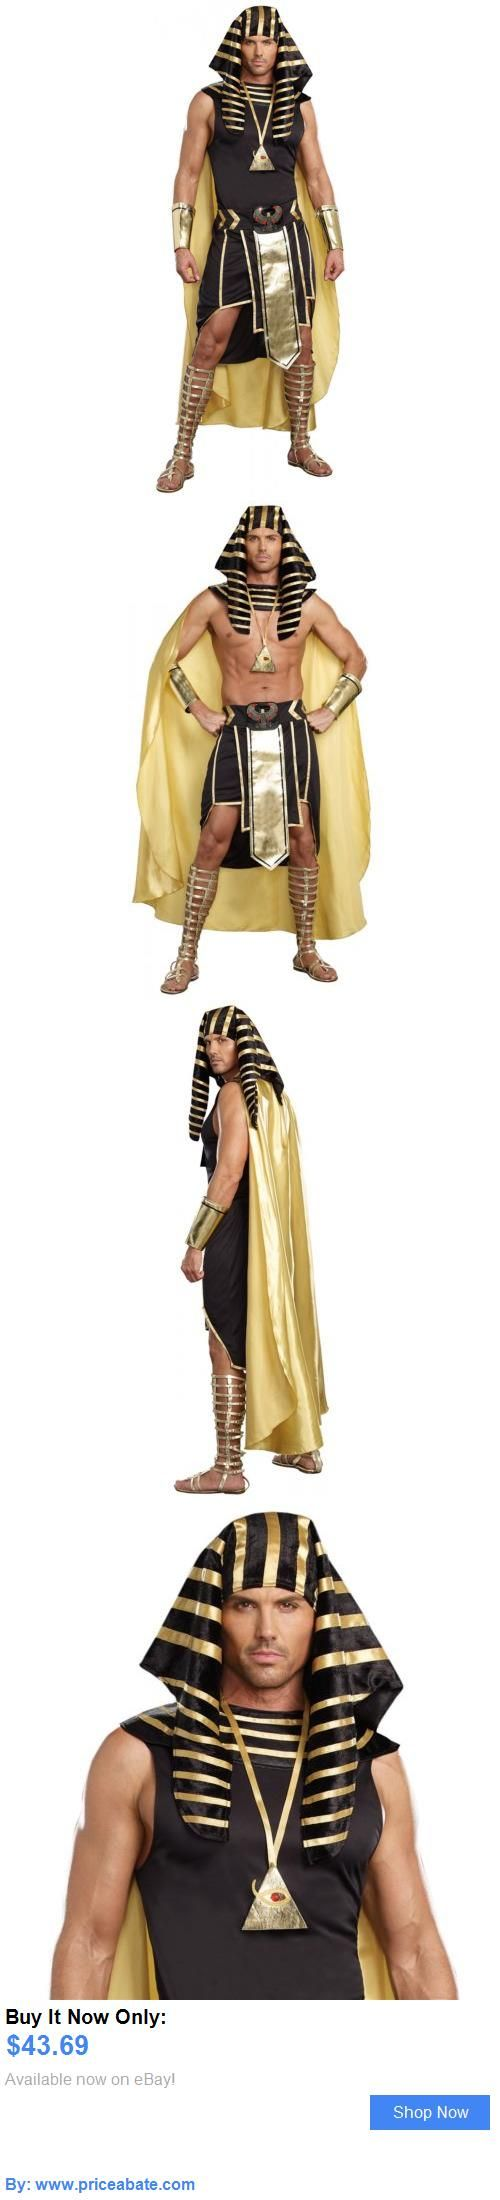 59 best Egypt images on Pinterest | Egyptian costume, Movie ...